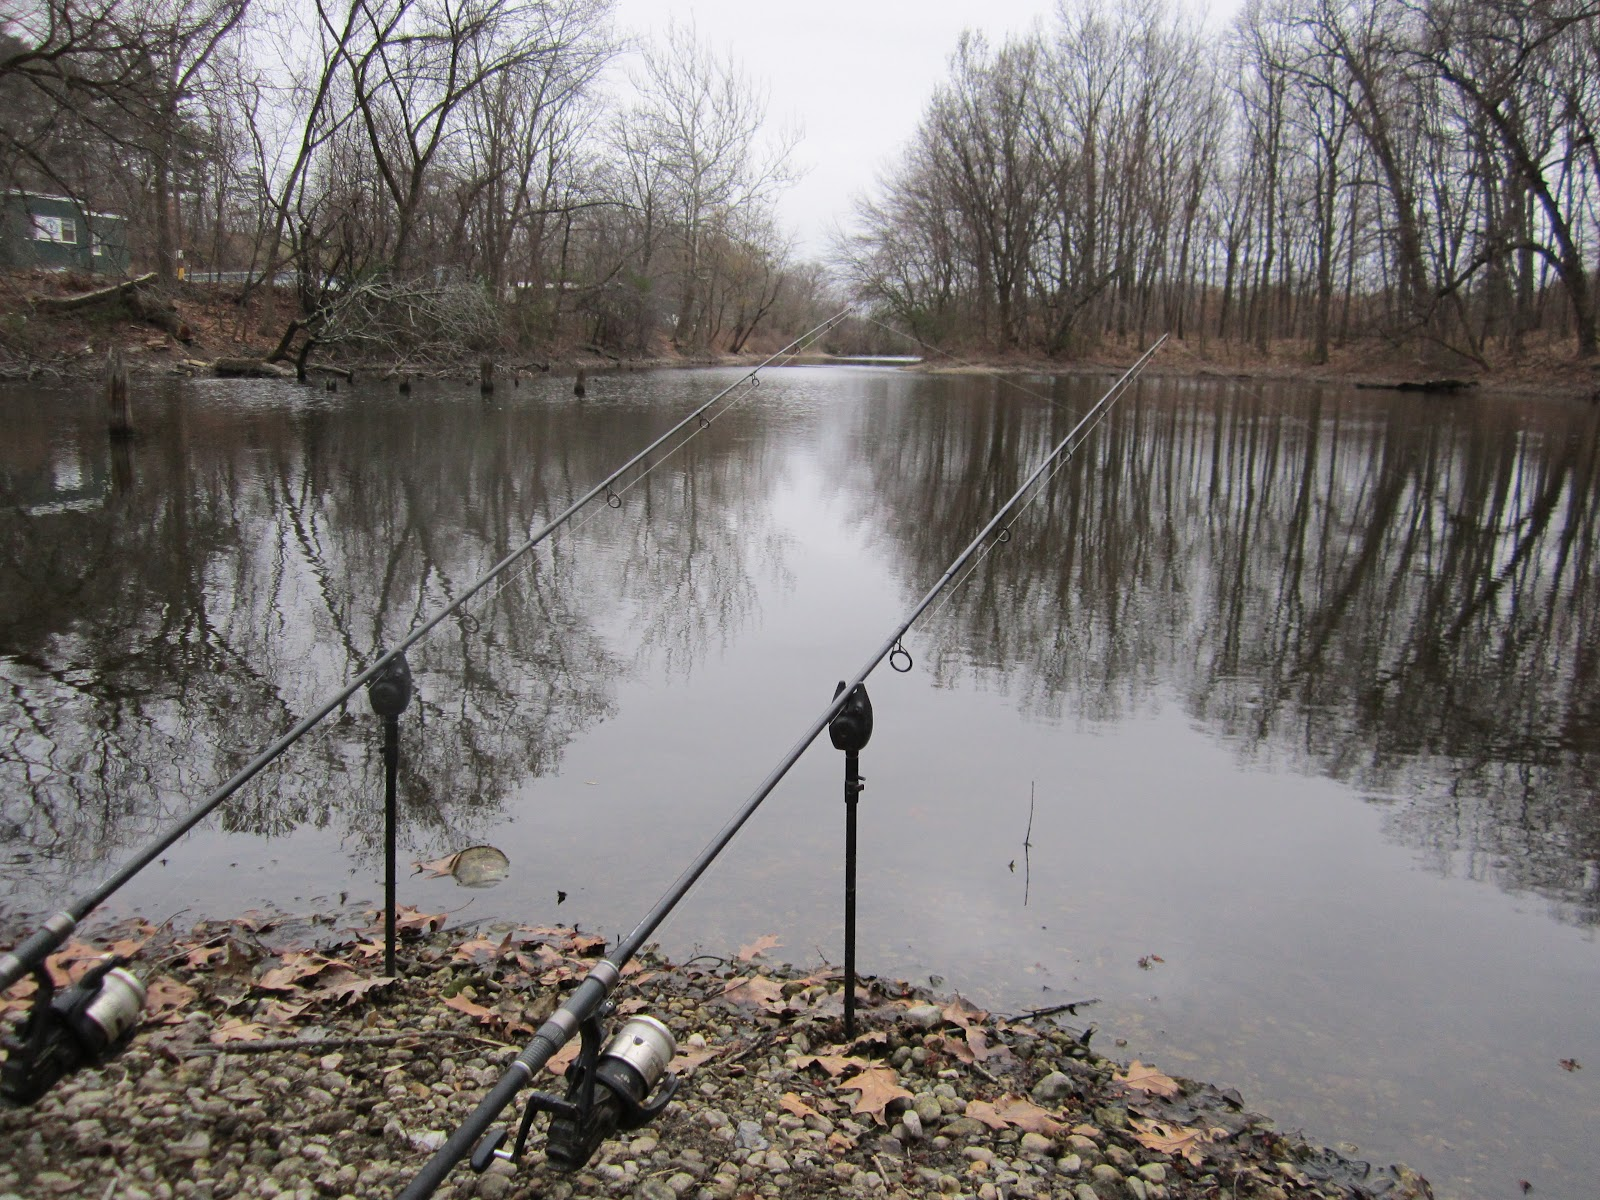 Rhode island carp fishing cold weather cools off carp fishing for Best weather for fishing